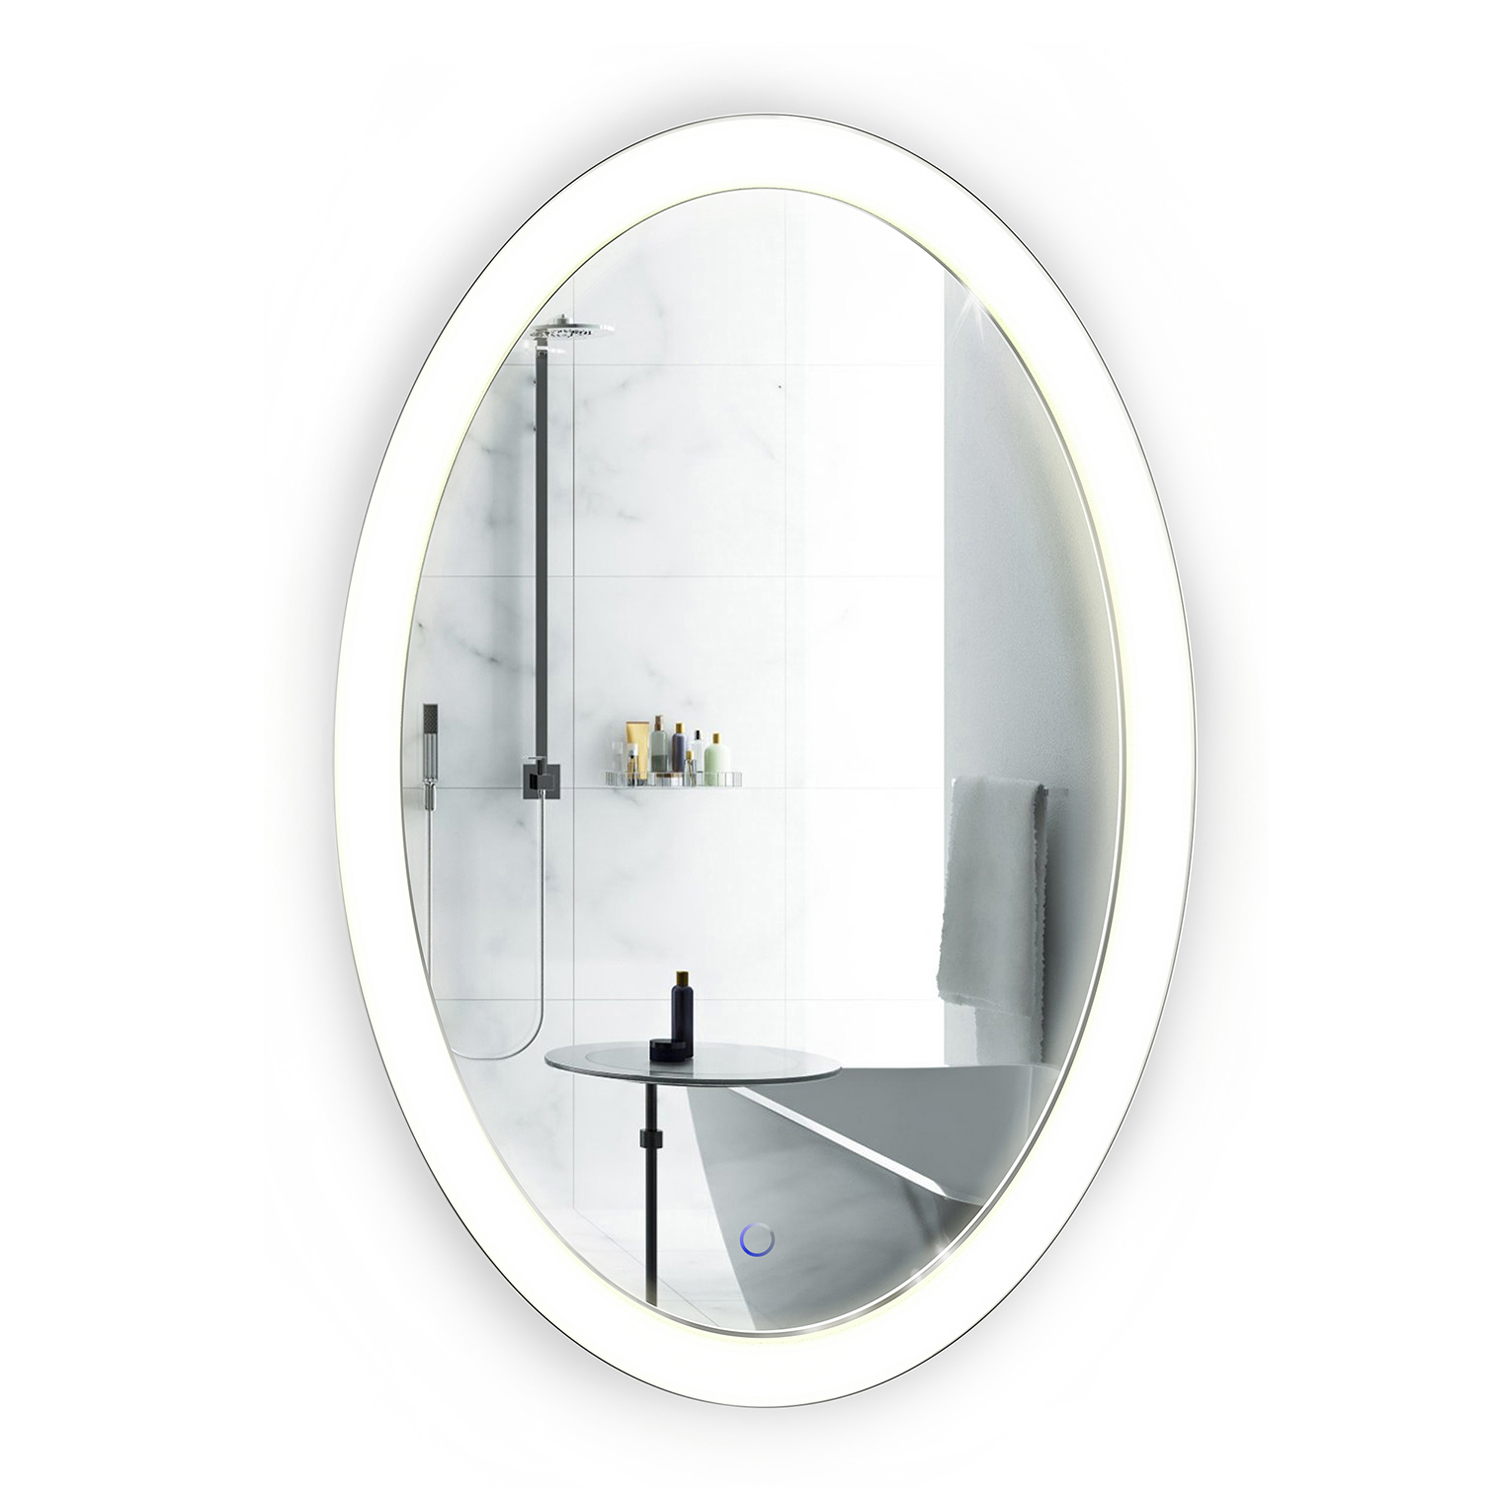 Led 20 x30 oval bathroom mirror lighted with dimmer for Mirror 20 x 30